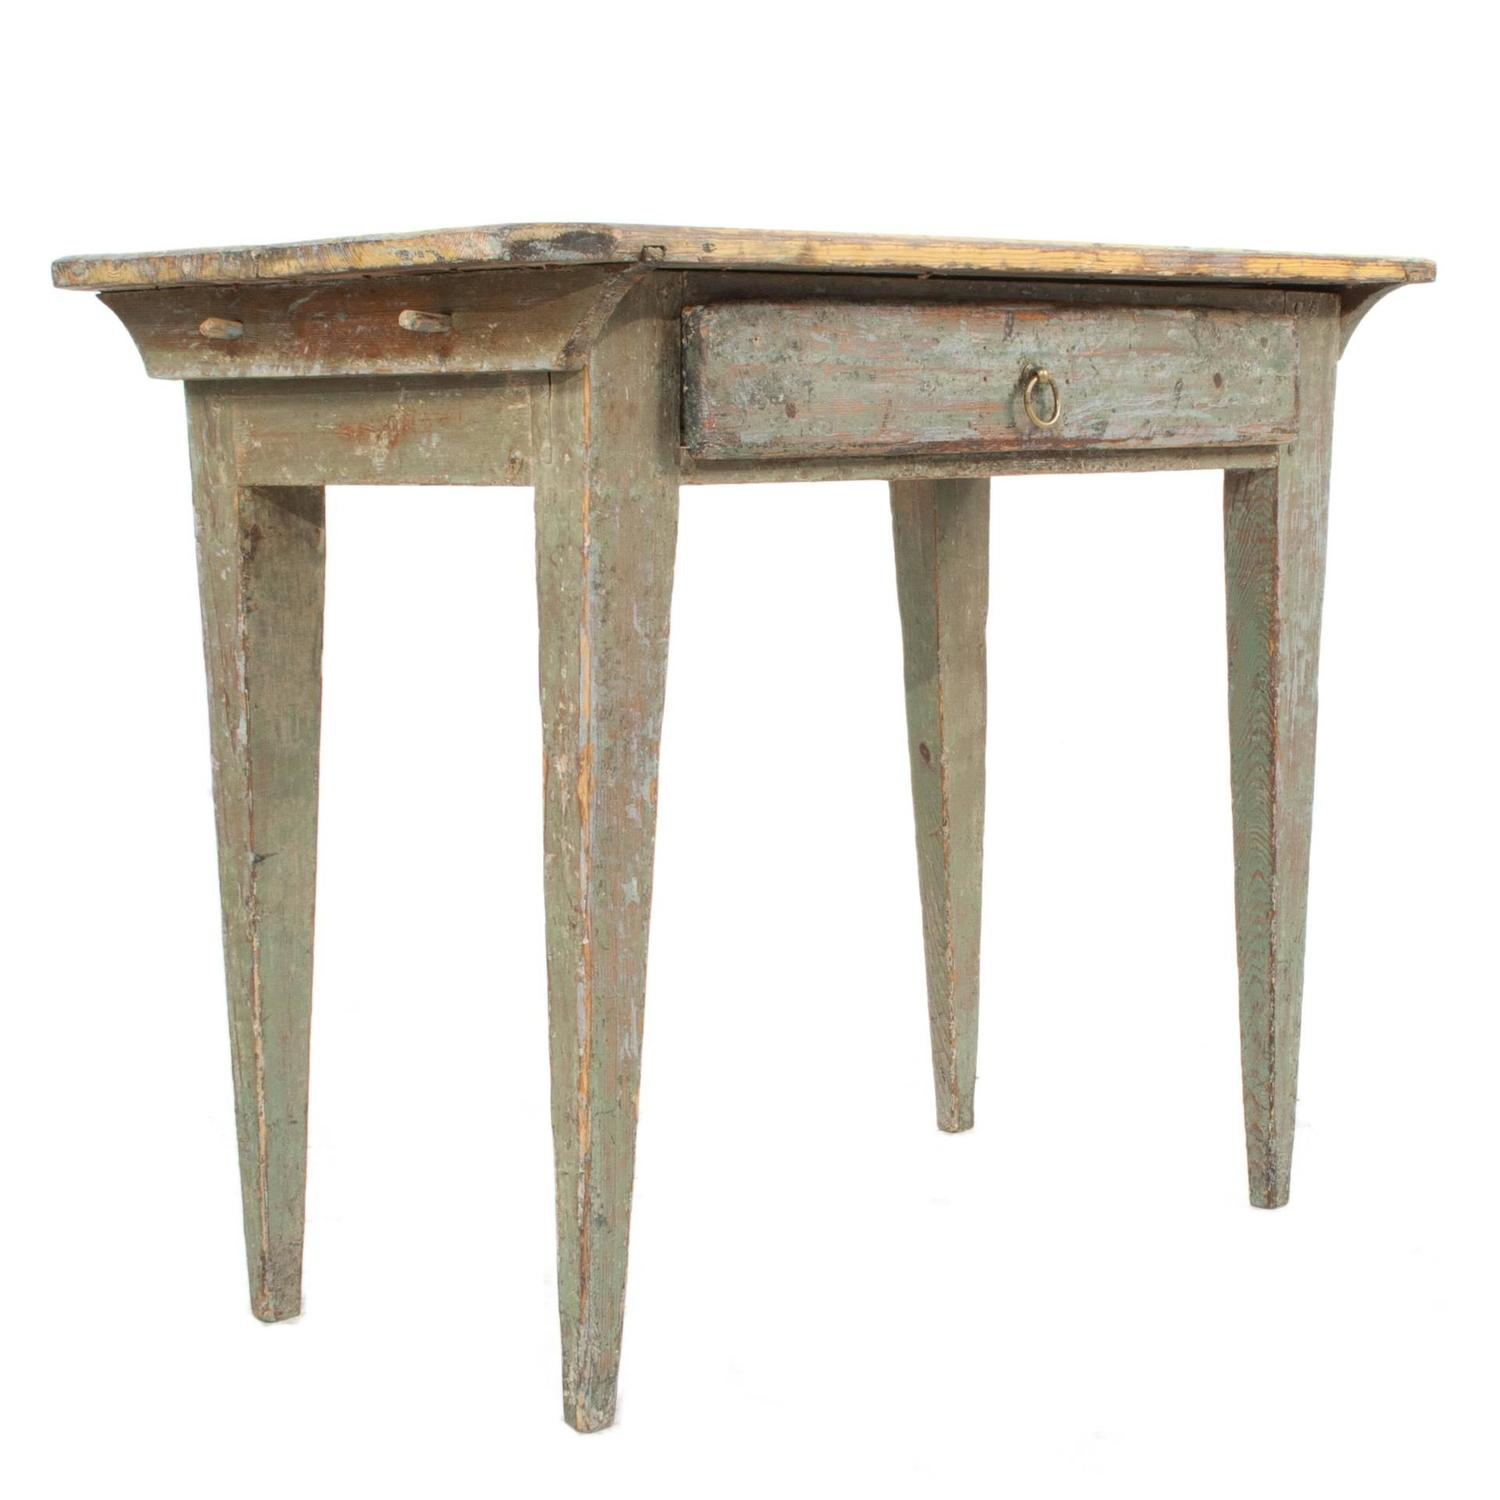 Gustavian side table for sale at 1stdibs for Oka gustavian side table